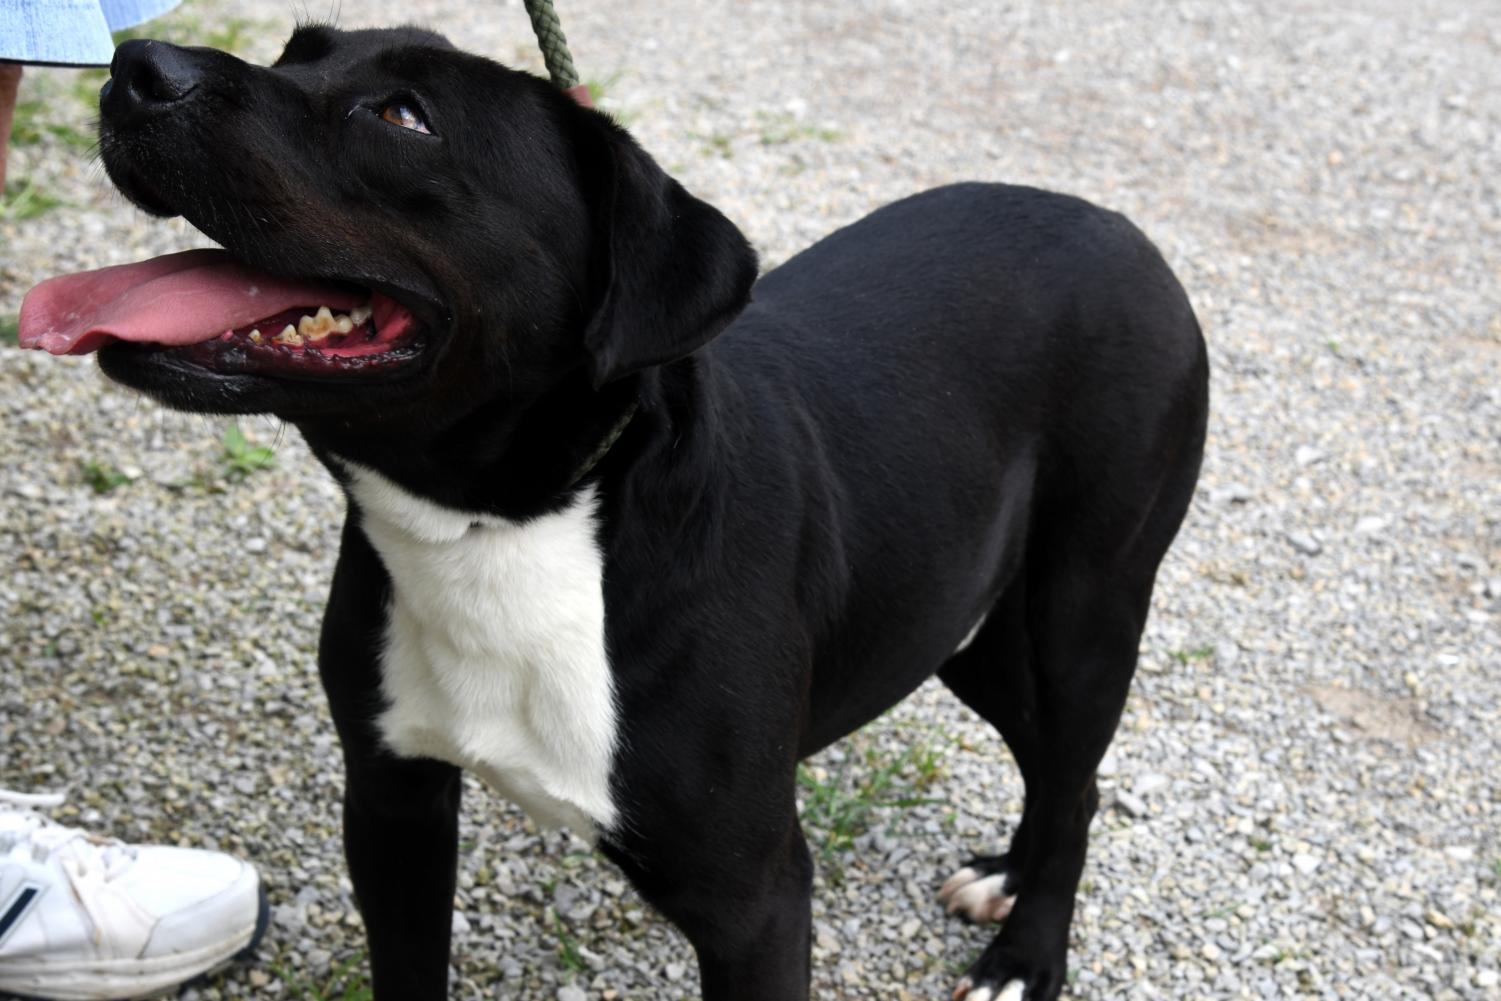 Prince was previously a featured furry friend in January, although he's making another debut as his first adoptive home wasn't the perfect fit.